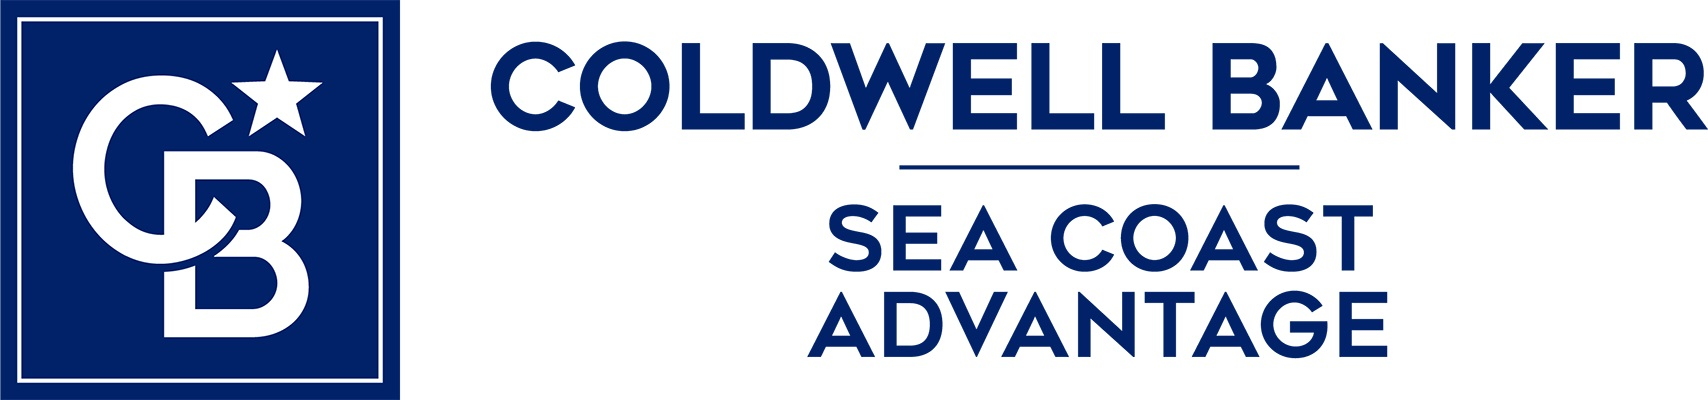 Judy Hall - Coldwell Banker Sea Coast Advantage Realty